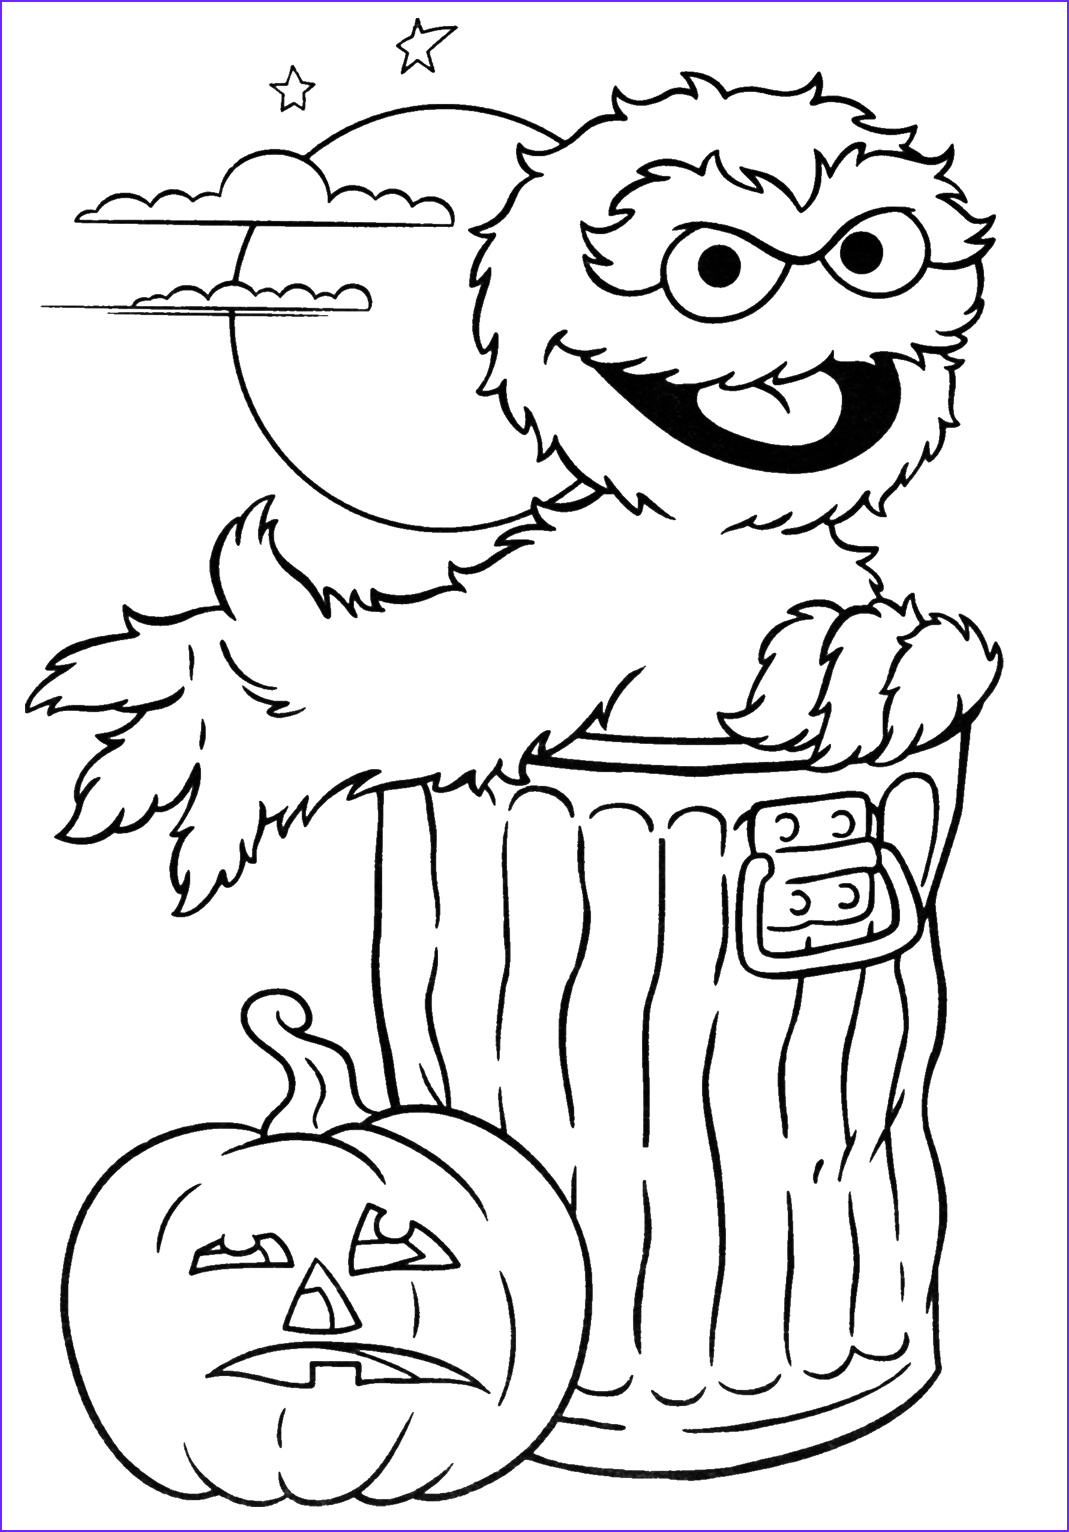 Free Printable Halloween Coloring Pages for Kids Beautiful Stock Halloween Printable Coloring Pages Minnesota Miranda